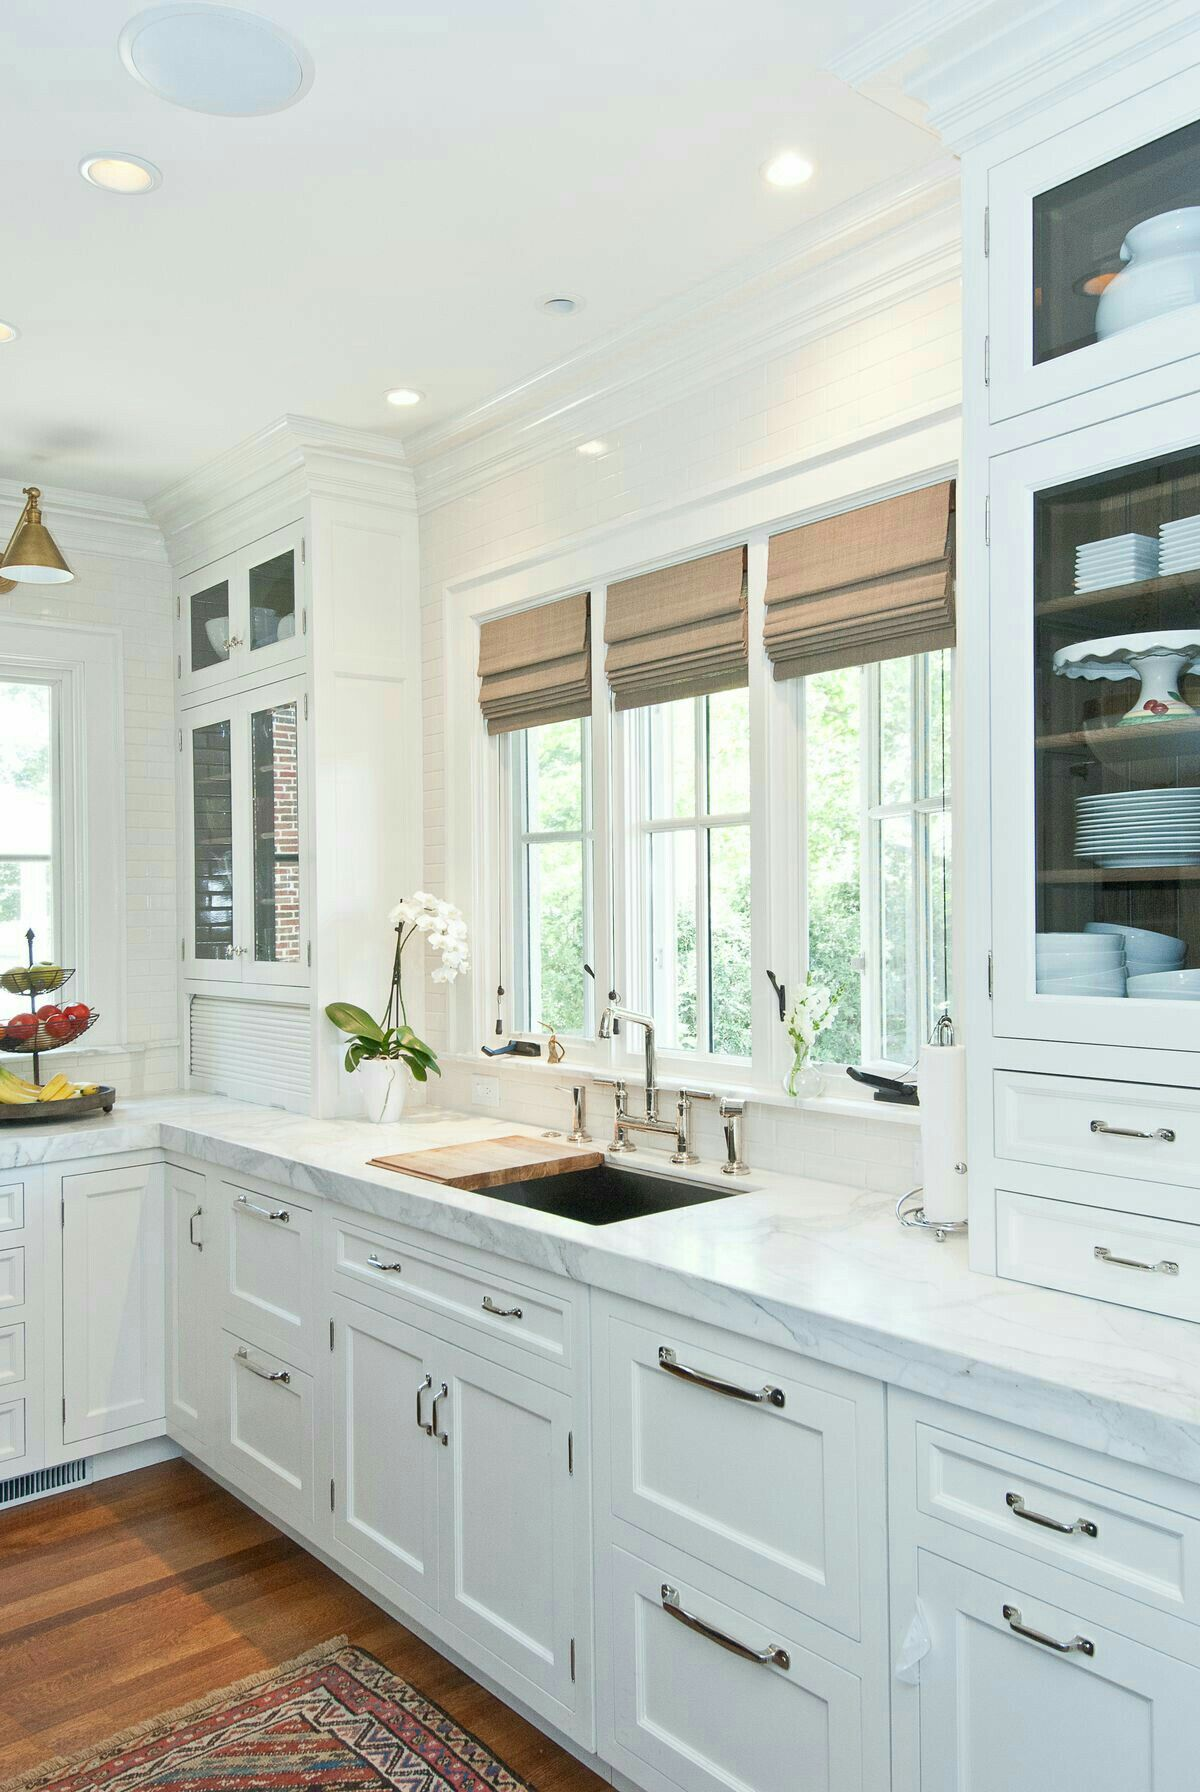 So many windows in the kitchen! | Lake House | Pinterest